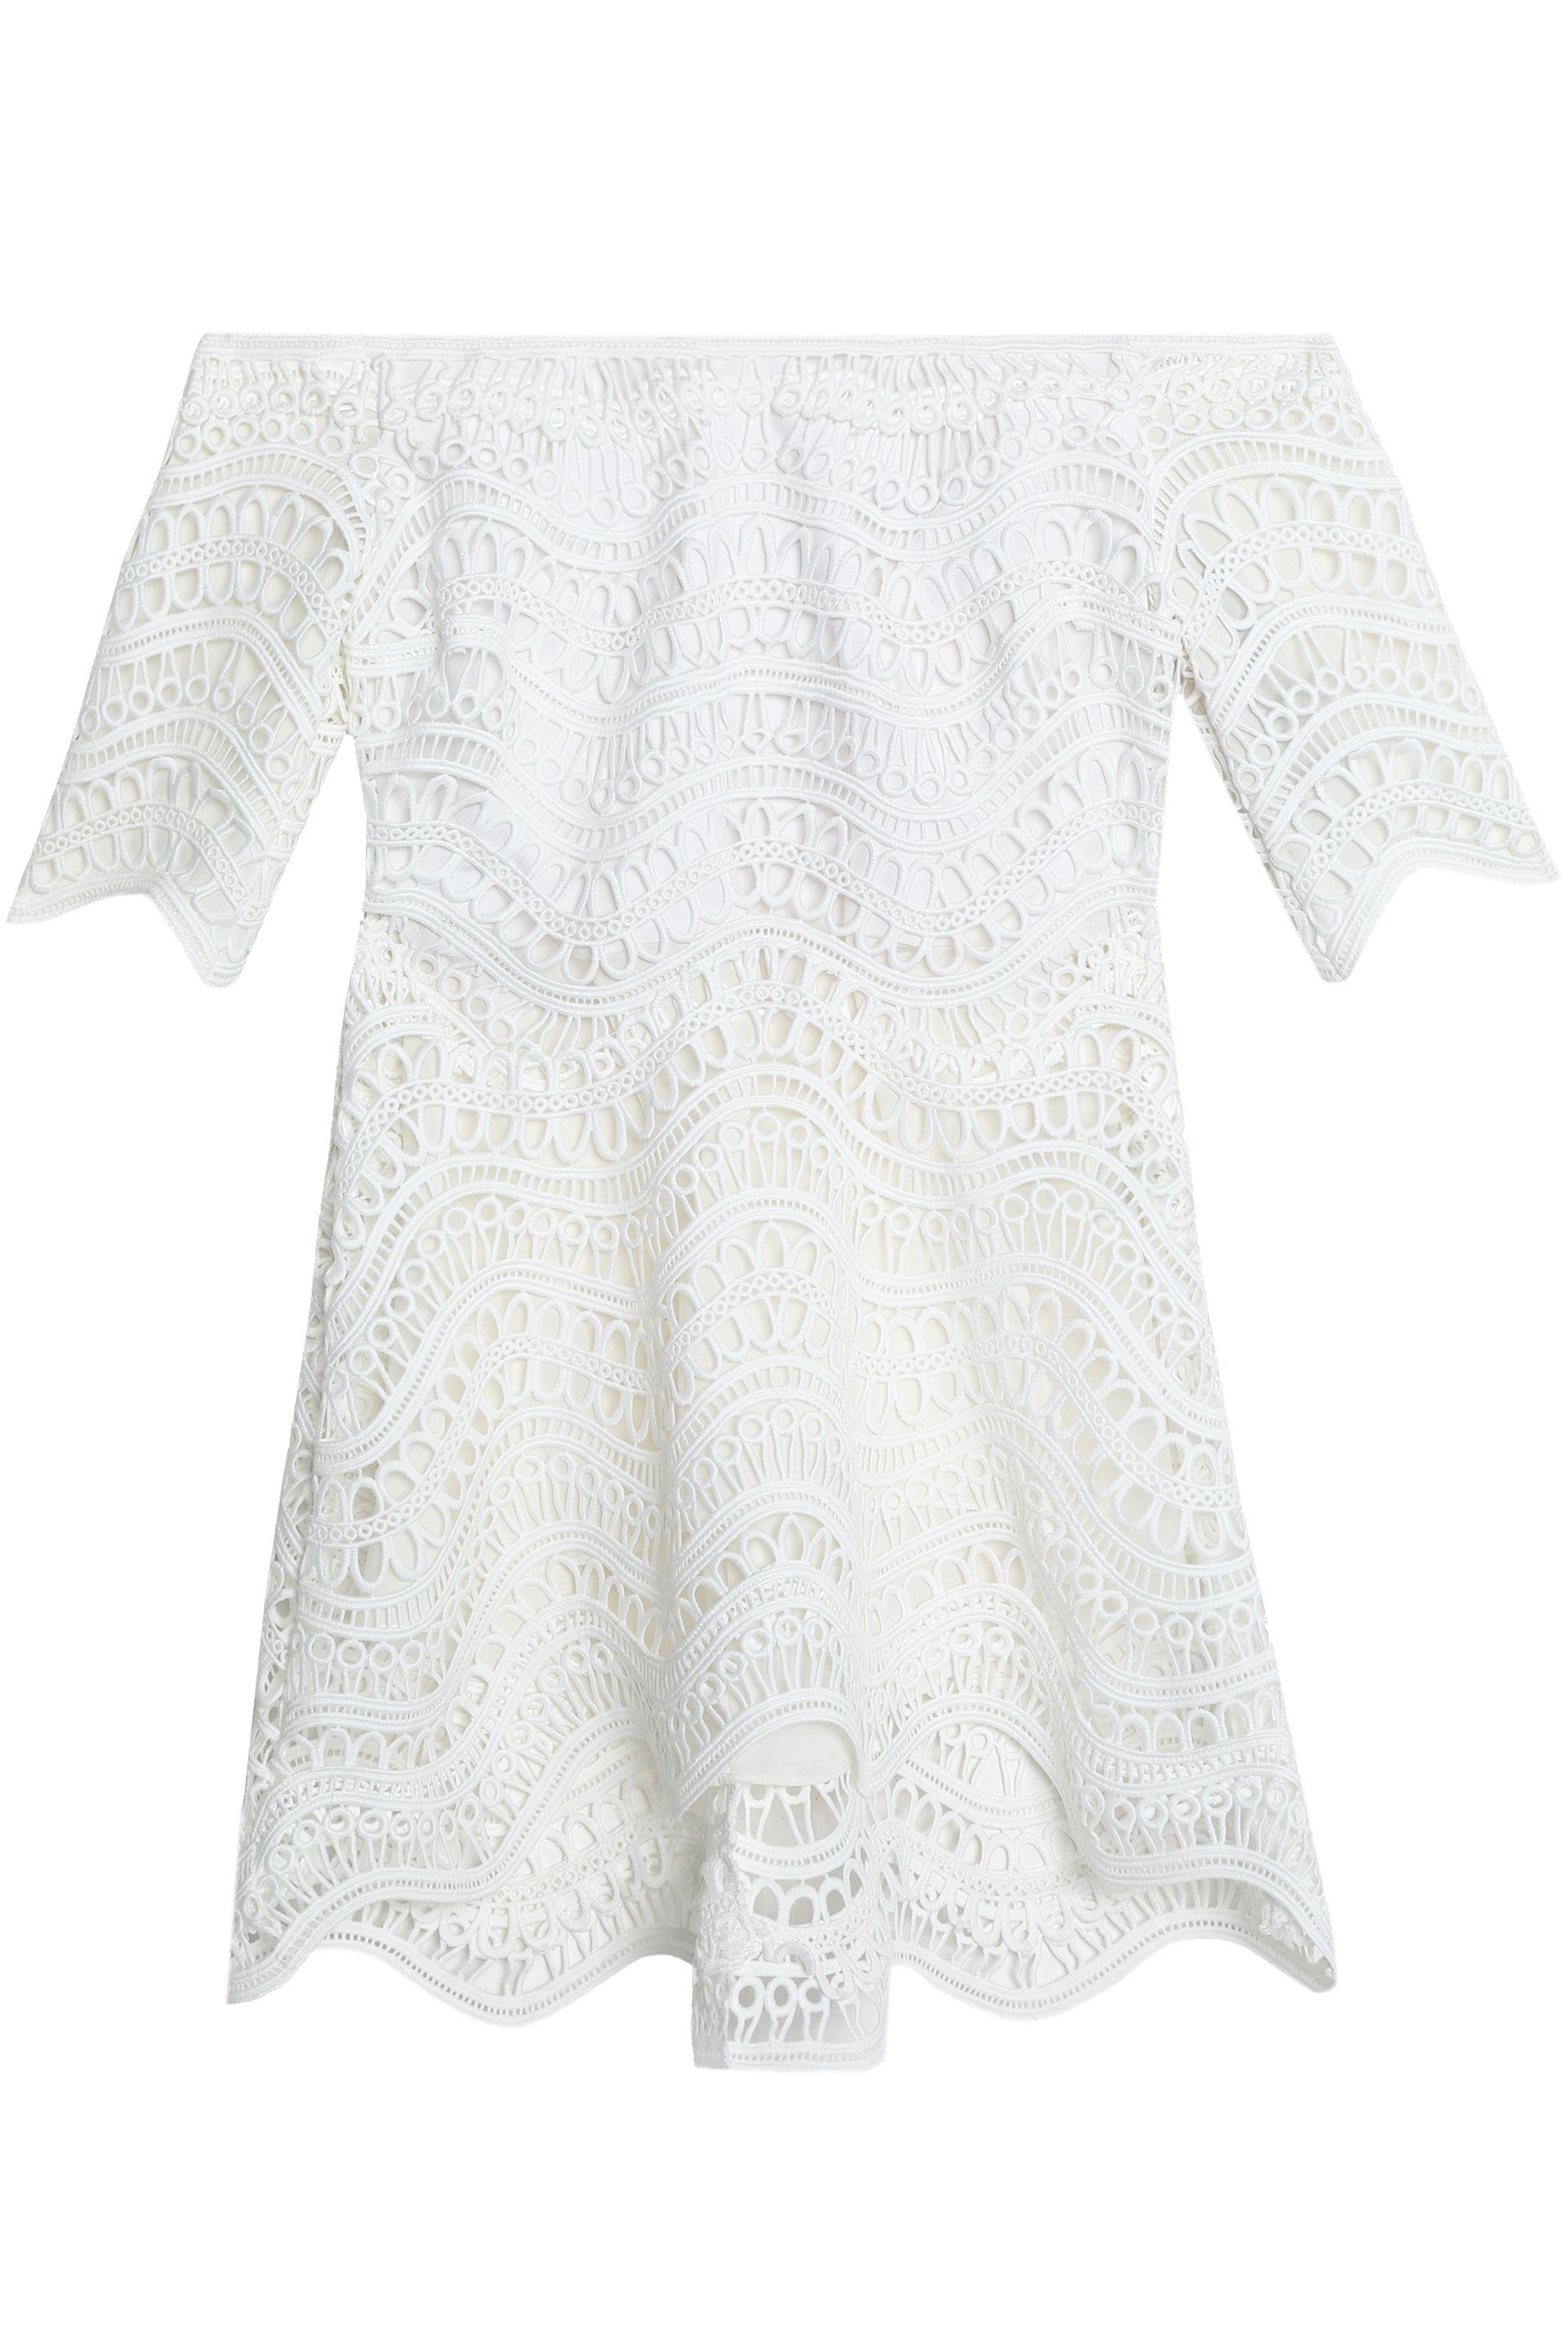 Lela Rose Woman Off-the-shoulder Guipure Lace Top White Size 6 Lela Rose Sneakernews Sale Online Discount Cost Sale Wholesale Price 2018 Newest Sale Online Free Shipping Looking For bbQRUCi